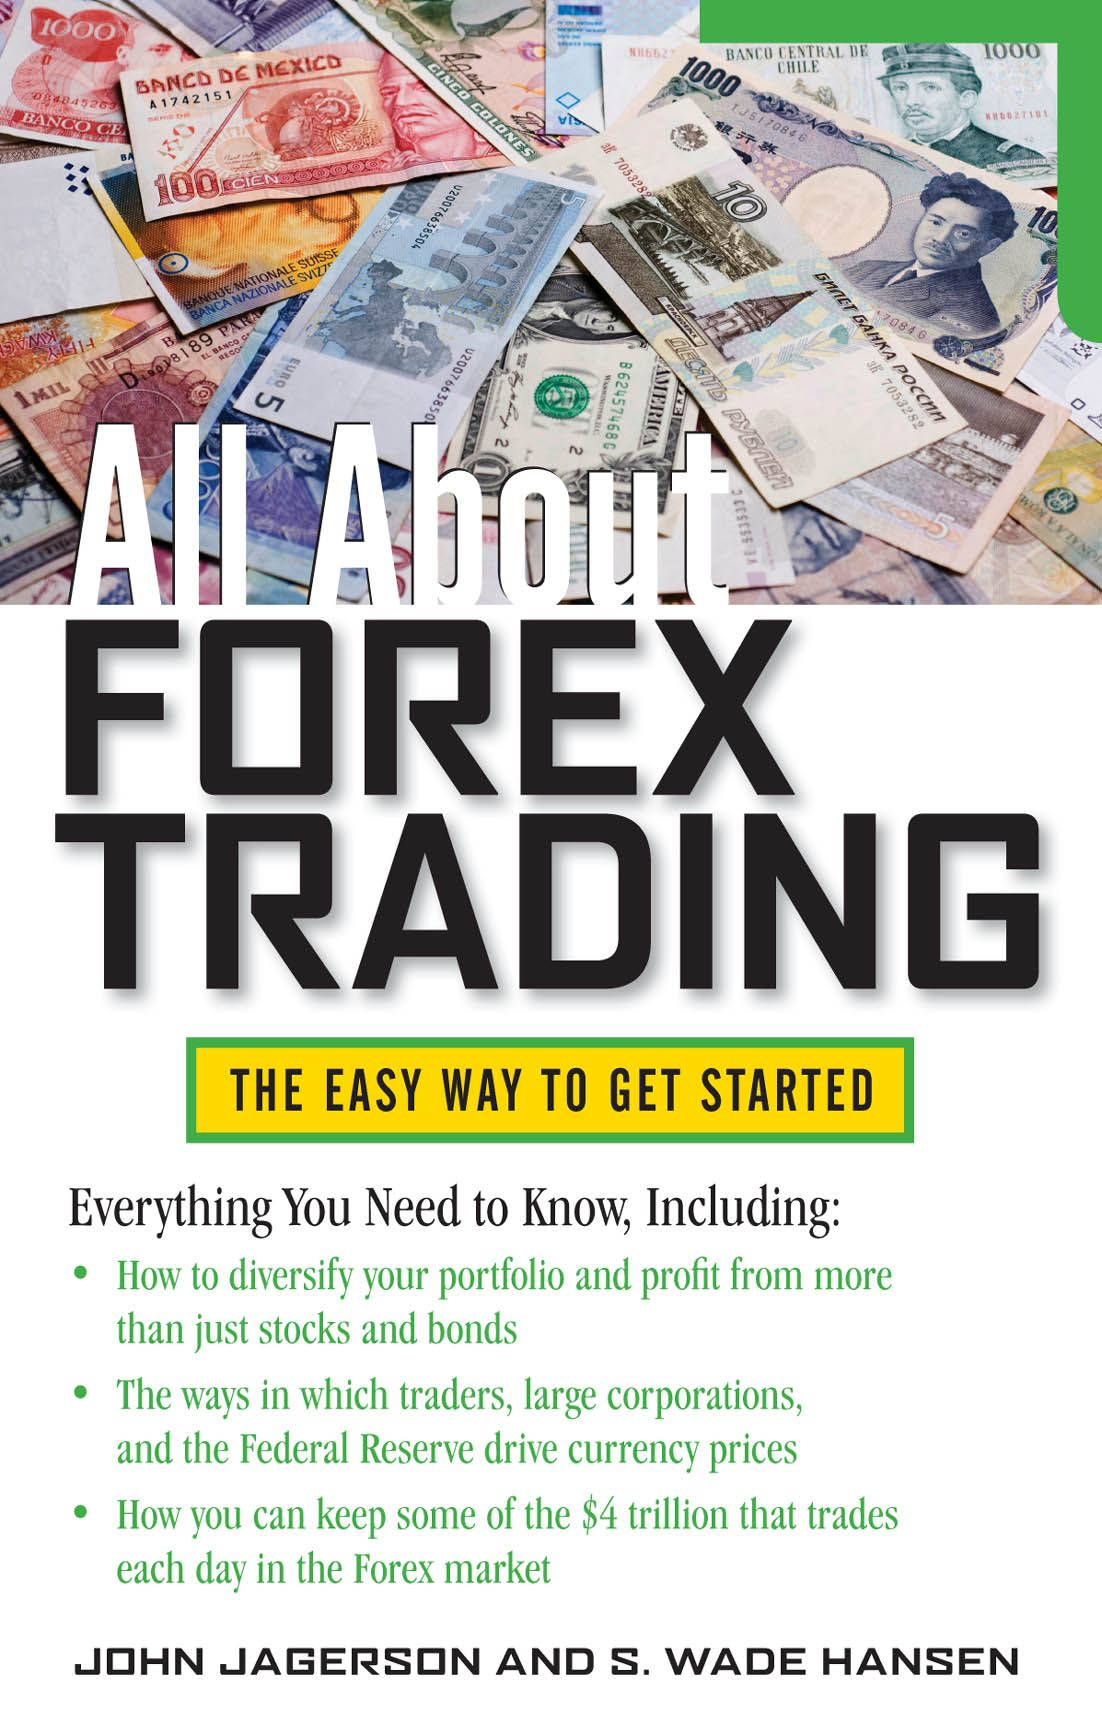 All About Forex Trading By: John Jagerson,S. Wade Hansen